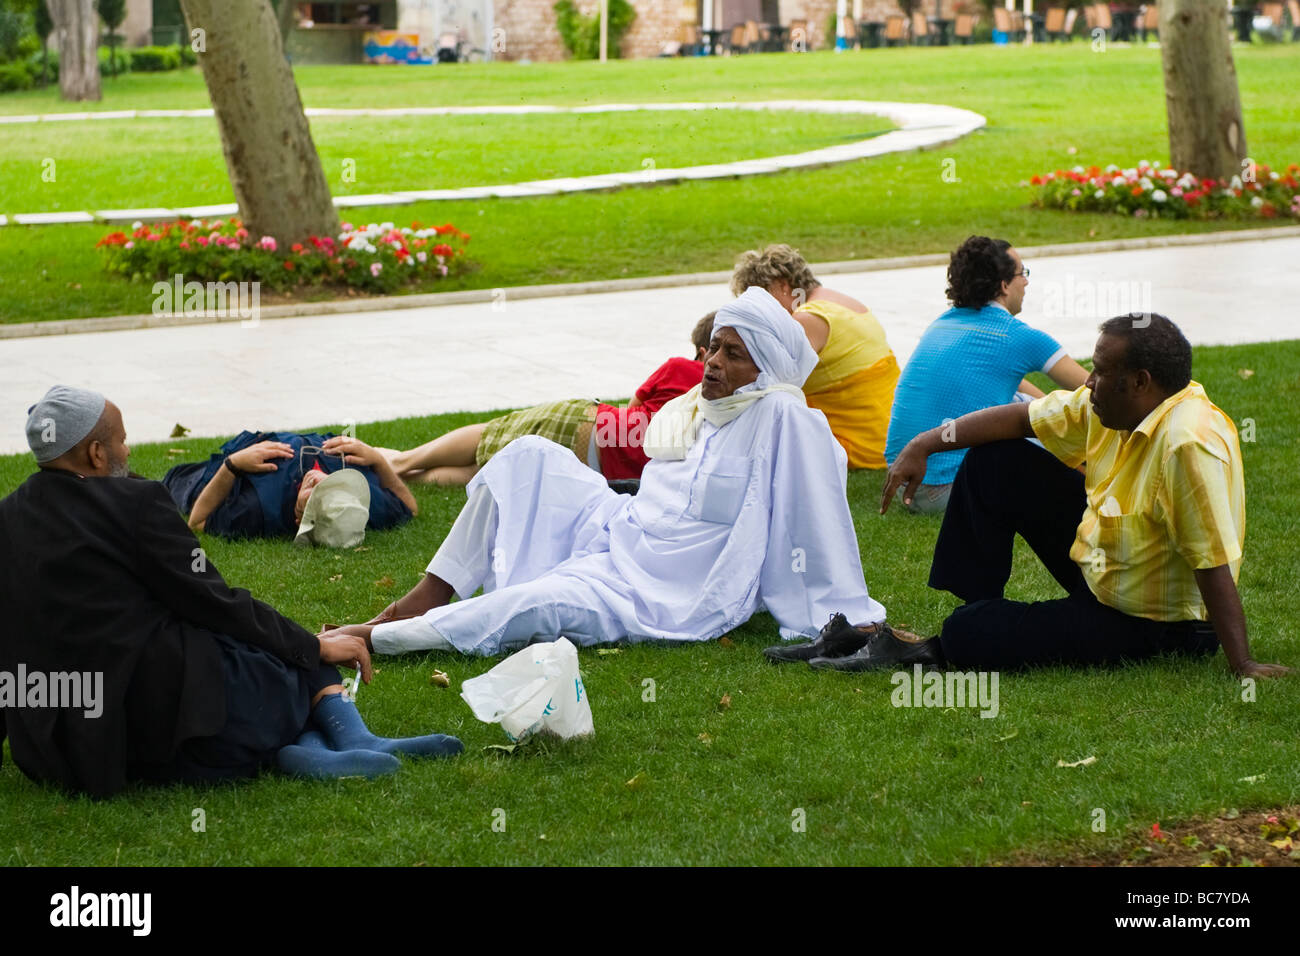 Turkey , Istanbul , Topkapi Palace , tourists & visitors from exotic climes relax in shade on grass lawn in gardens Stock Photo